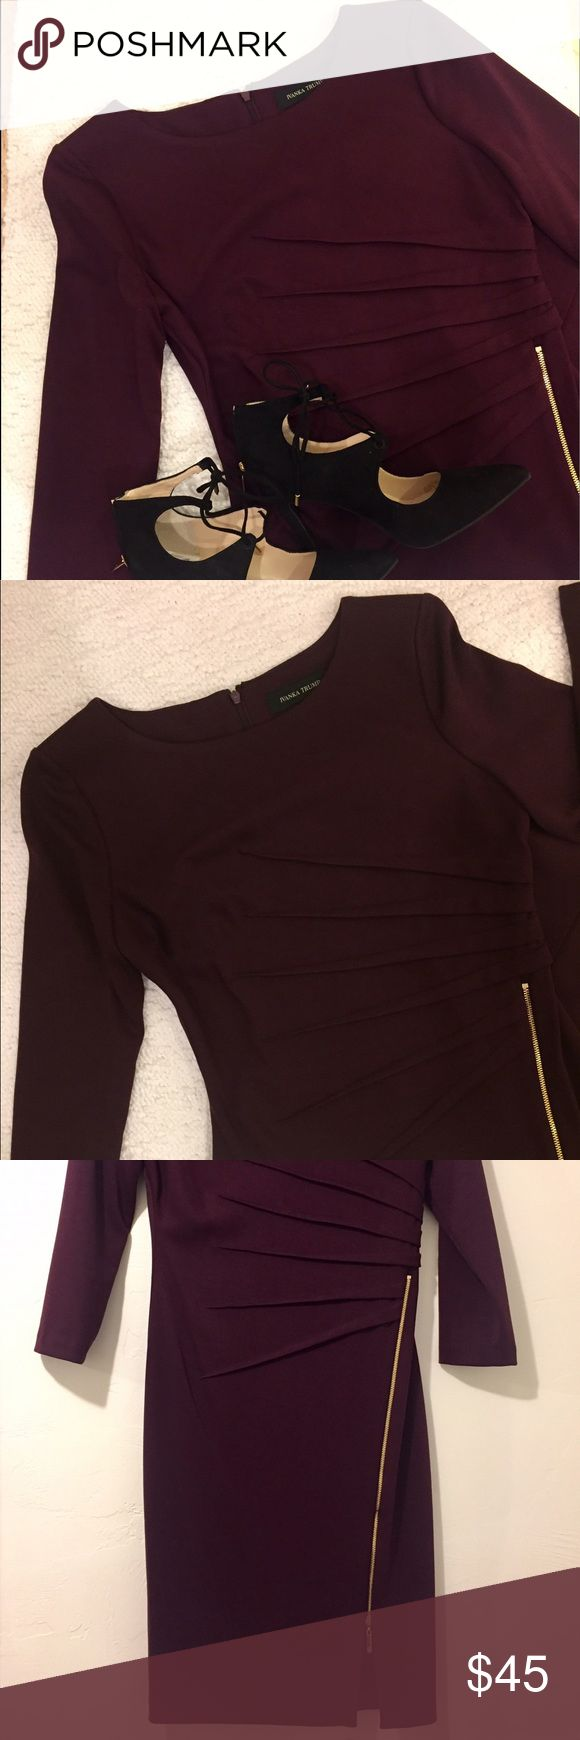 Plum Ivanka Trump dress This beautiful Ivanka Trump dress is in perfect condition. Quarter sleeves. Soft material with a beautiful color. Love the gold accent zipper in the front. Only worn once. First two photos are from boutique online. Ivanka Trump Dresses Midi